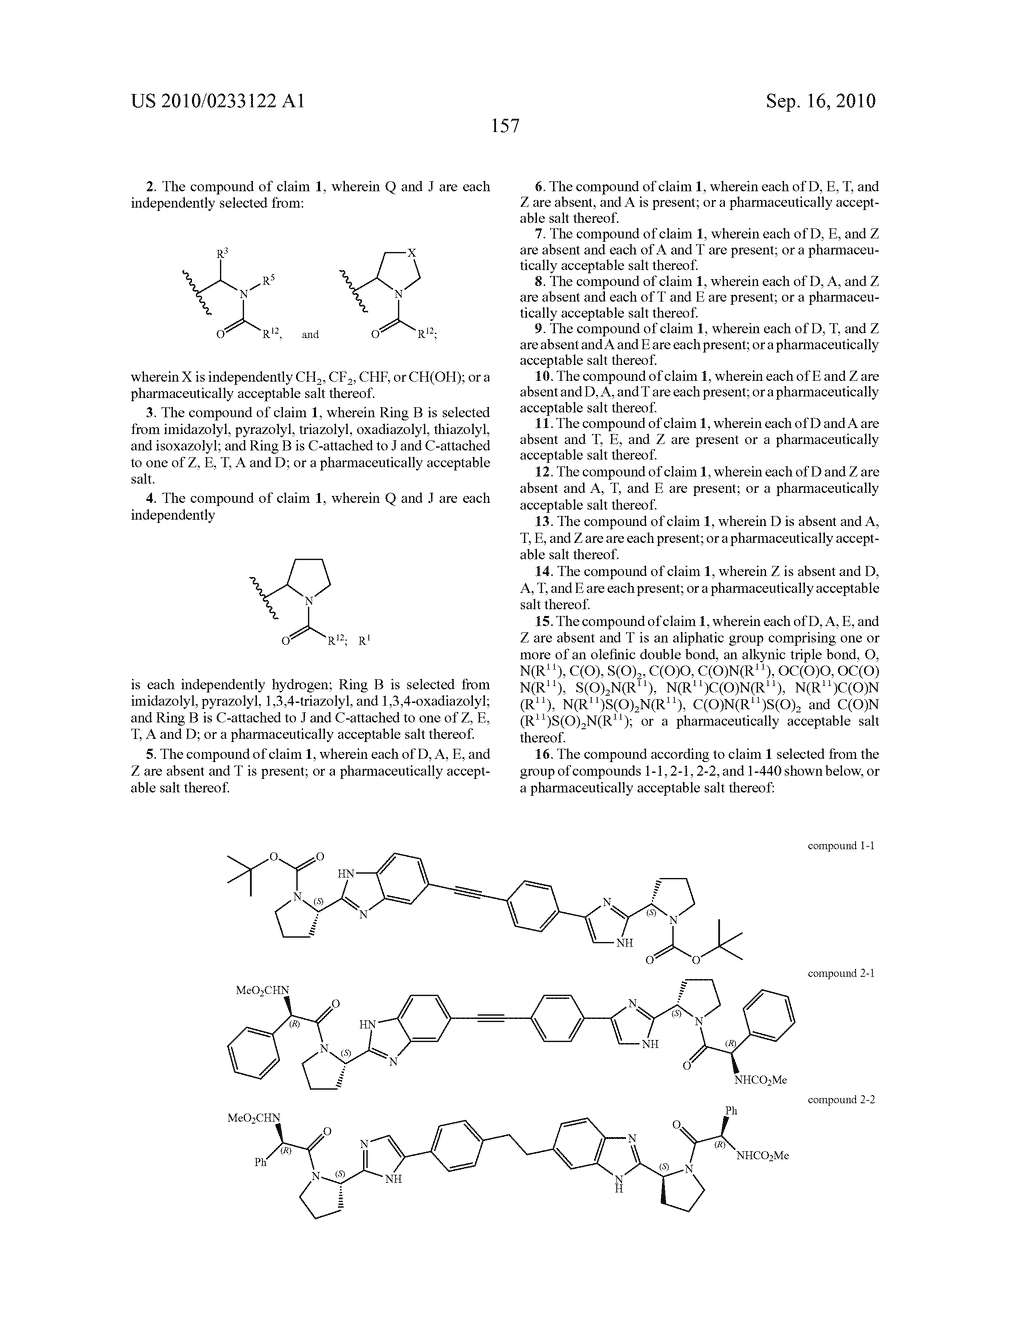 NOVEL BENZIMIDAZOLE DERIVATIVES - diagram, schematic, and image 158